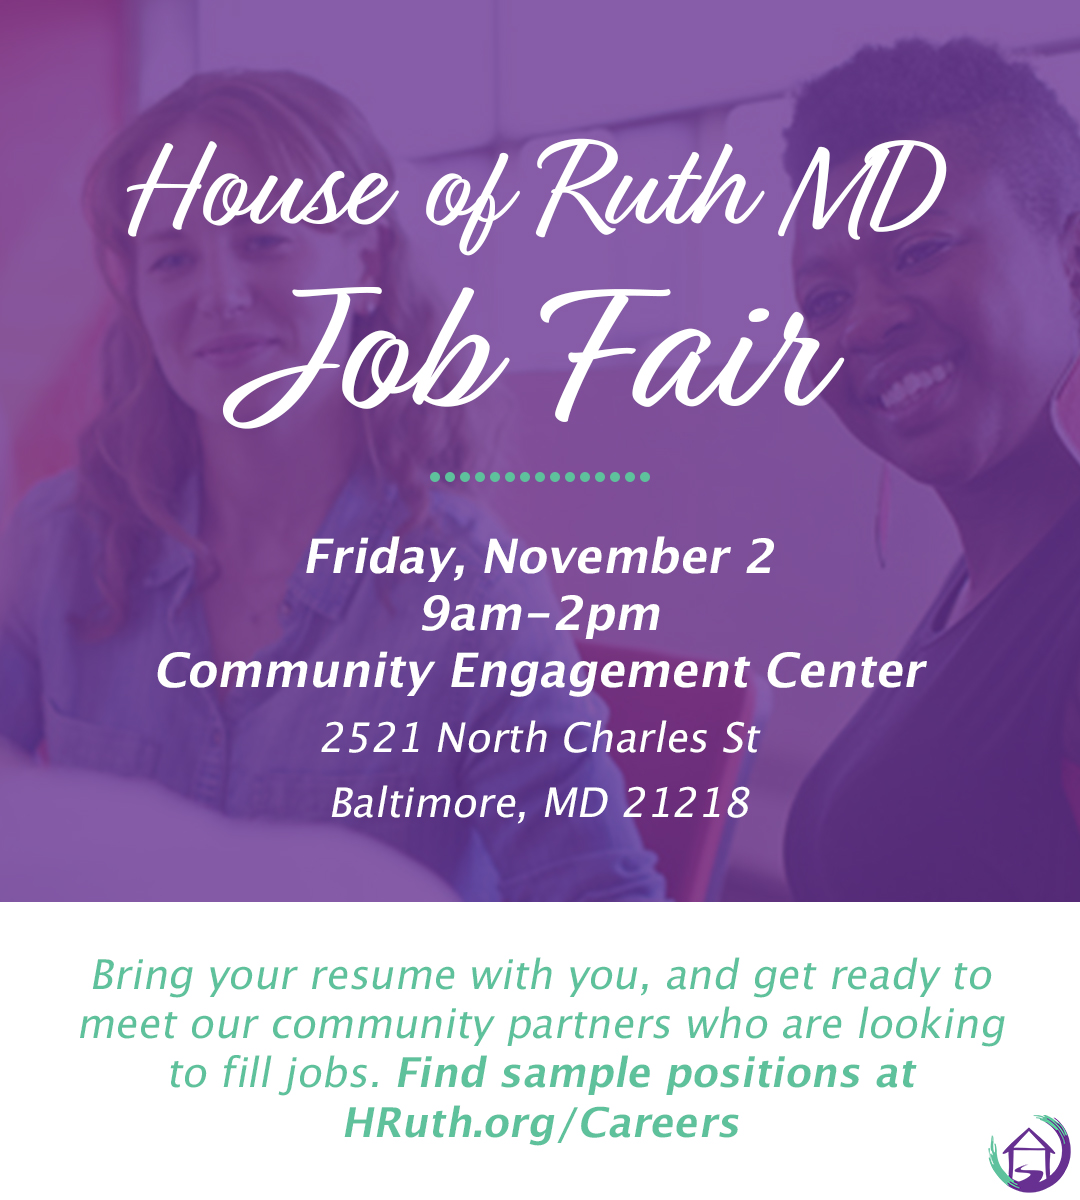 Careers - House of Ruth Maryland